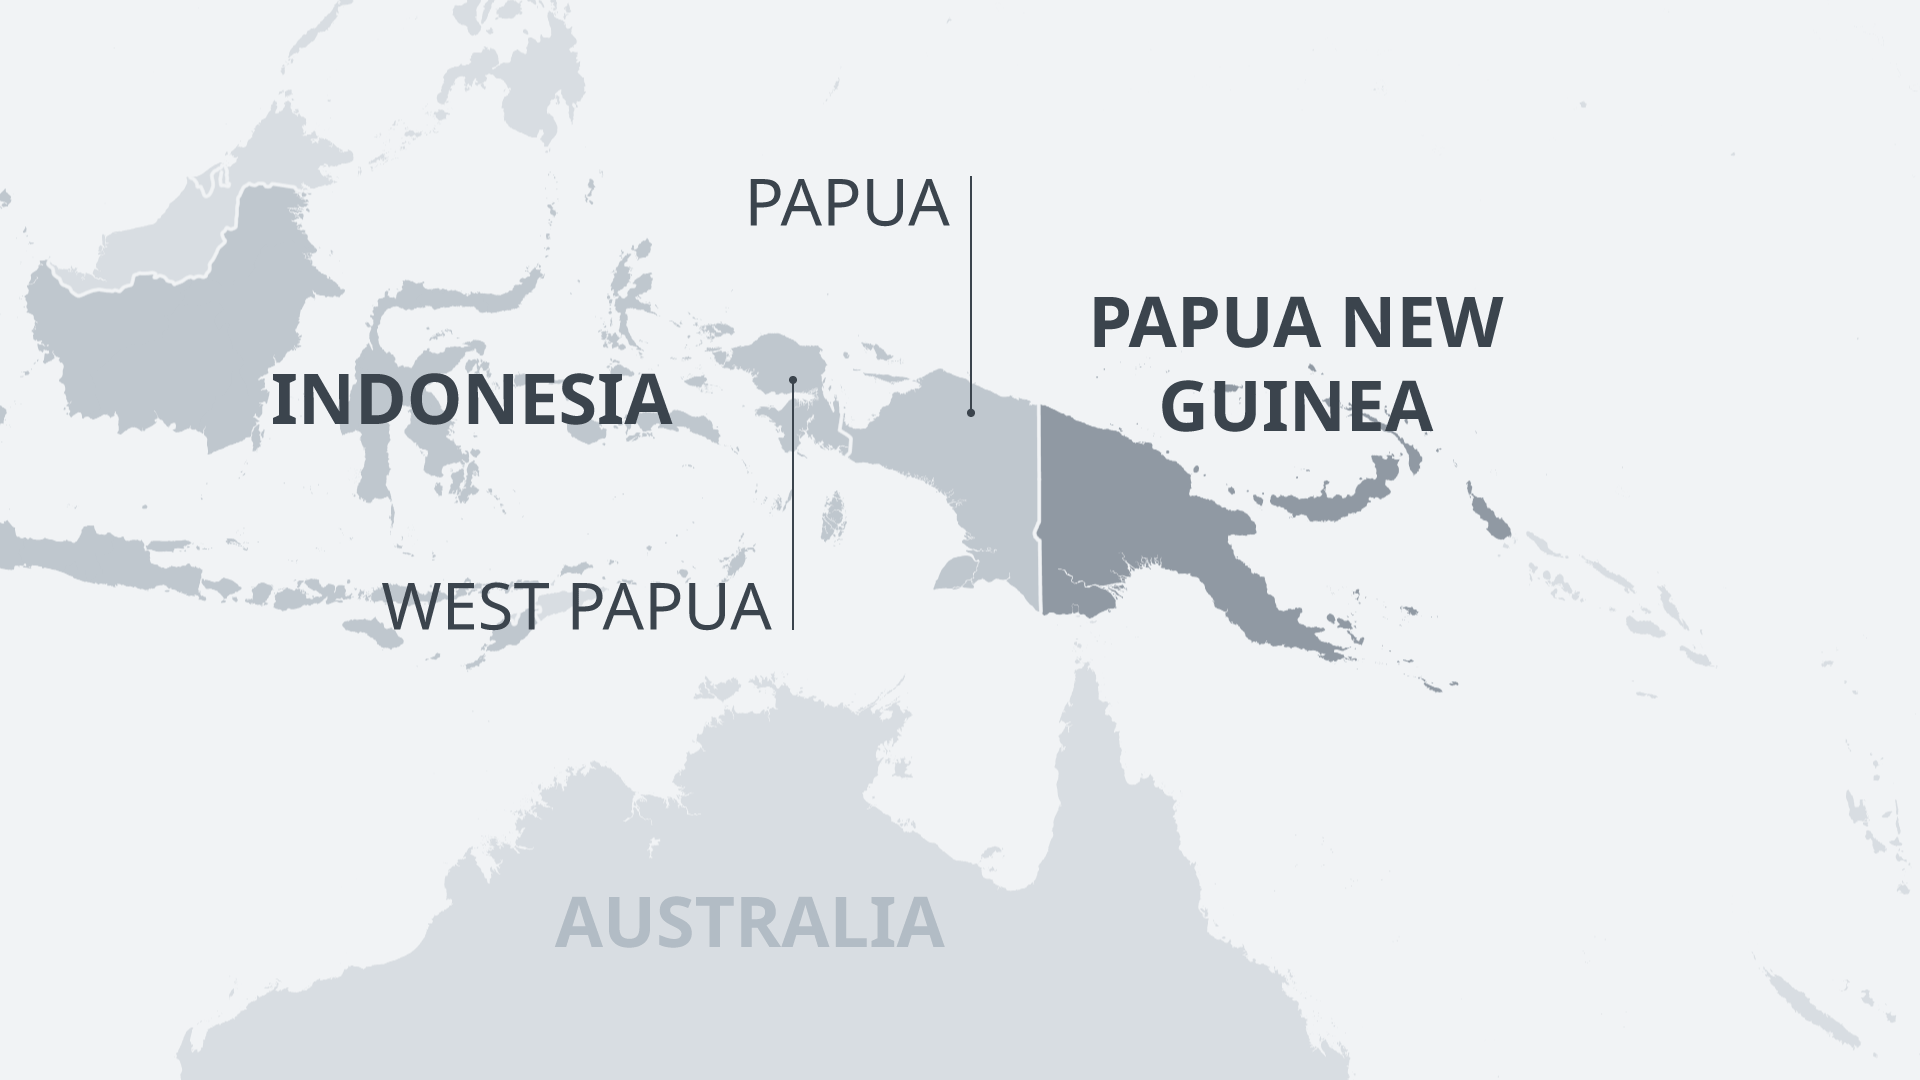 Indonesia Blocks Internet In Papua Amid Unrest News Dw 22 08